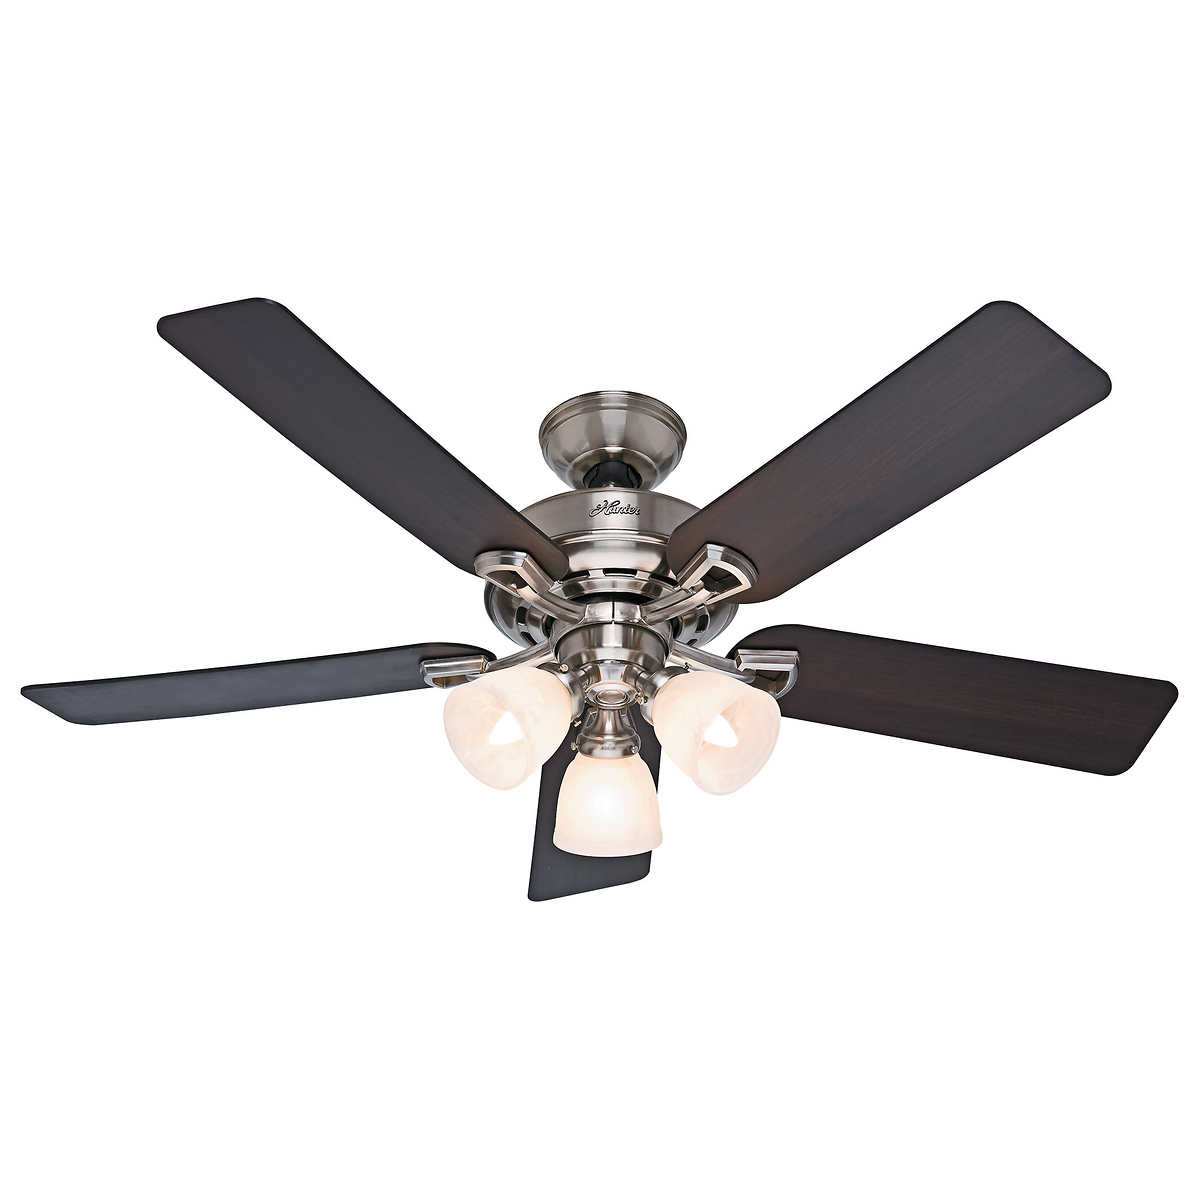 """hunter """" light ceiling fan with remote -  light ceiling fan with remote click to zoom"""